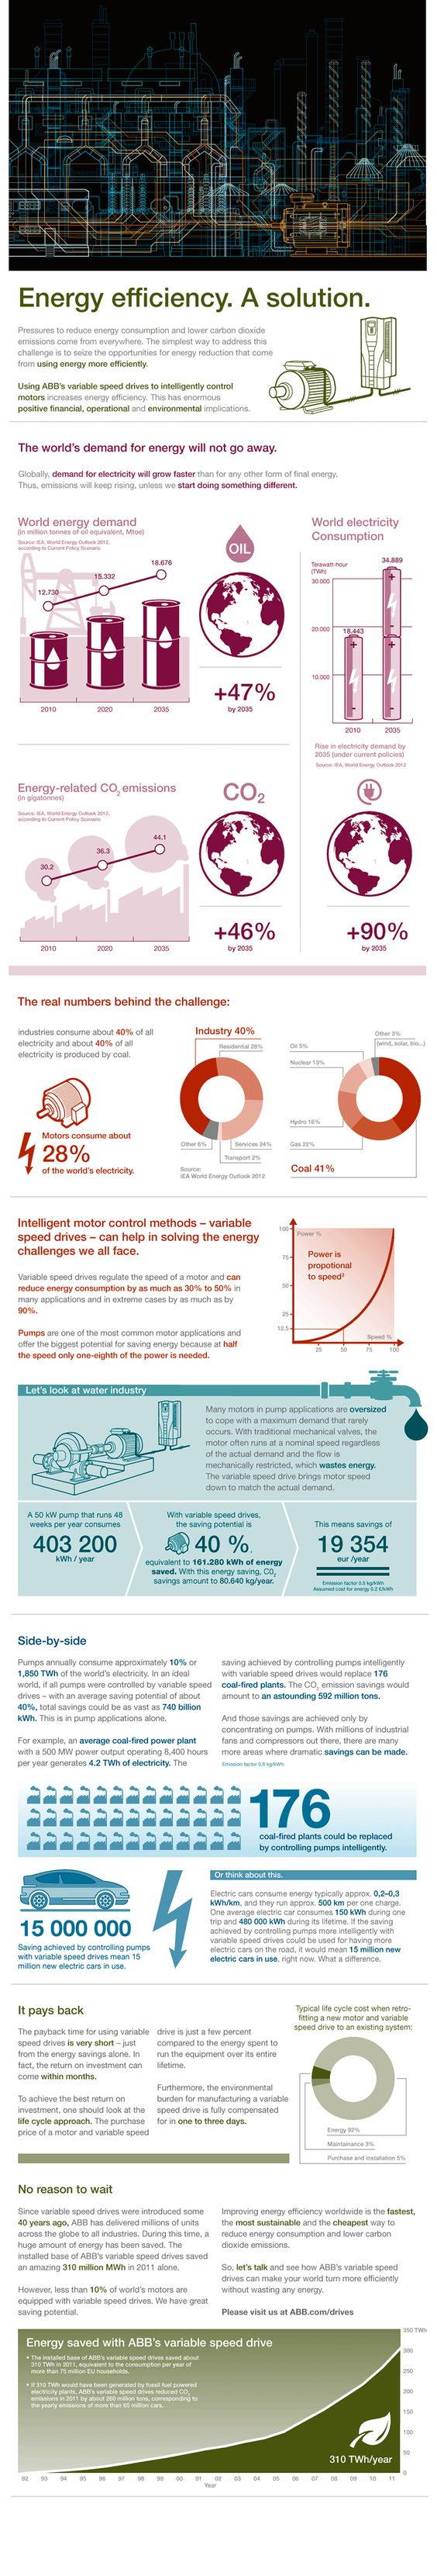 ABB Infographic - Energy Efficiency. A solution. - Drives, inverters and converters